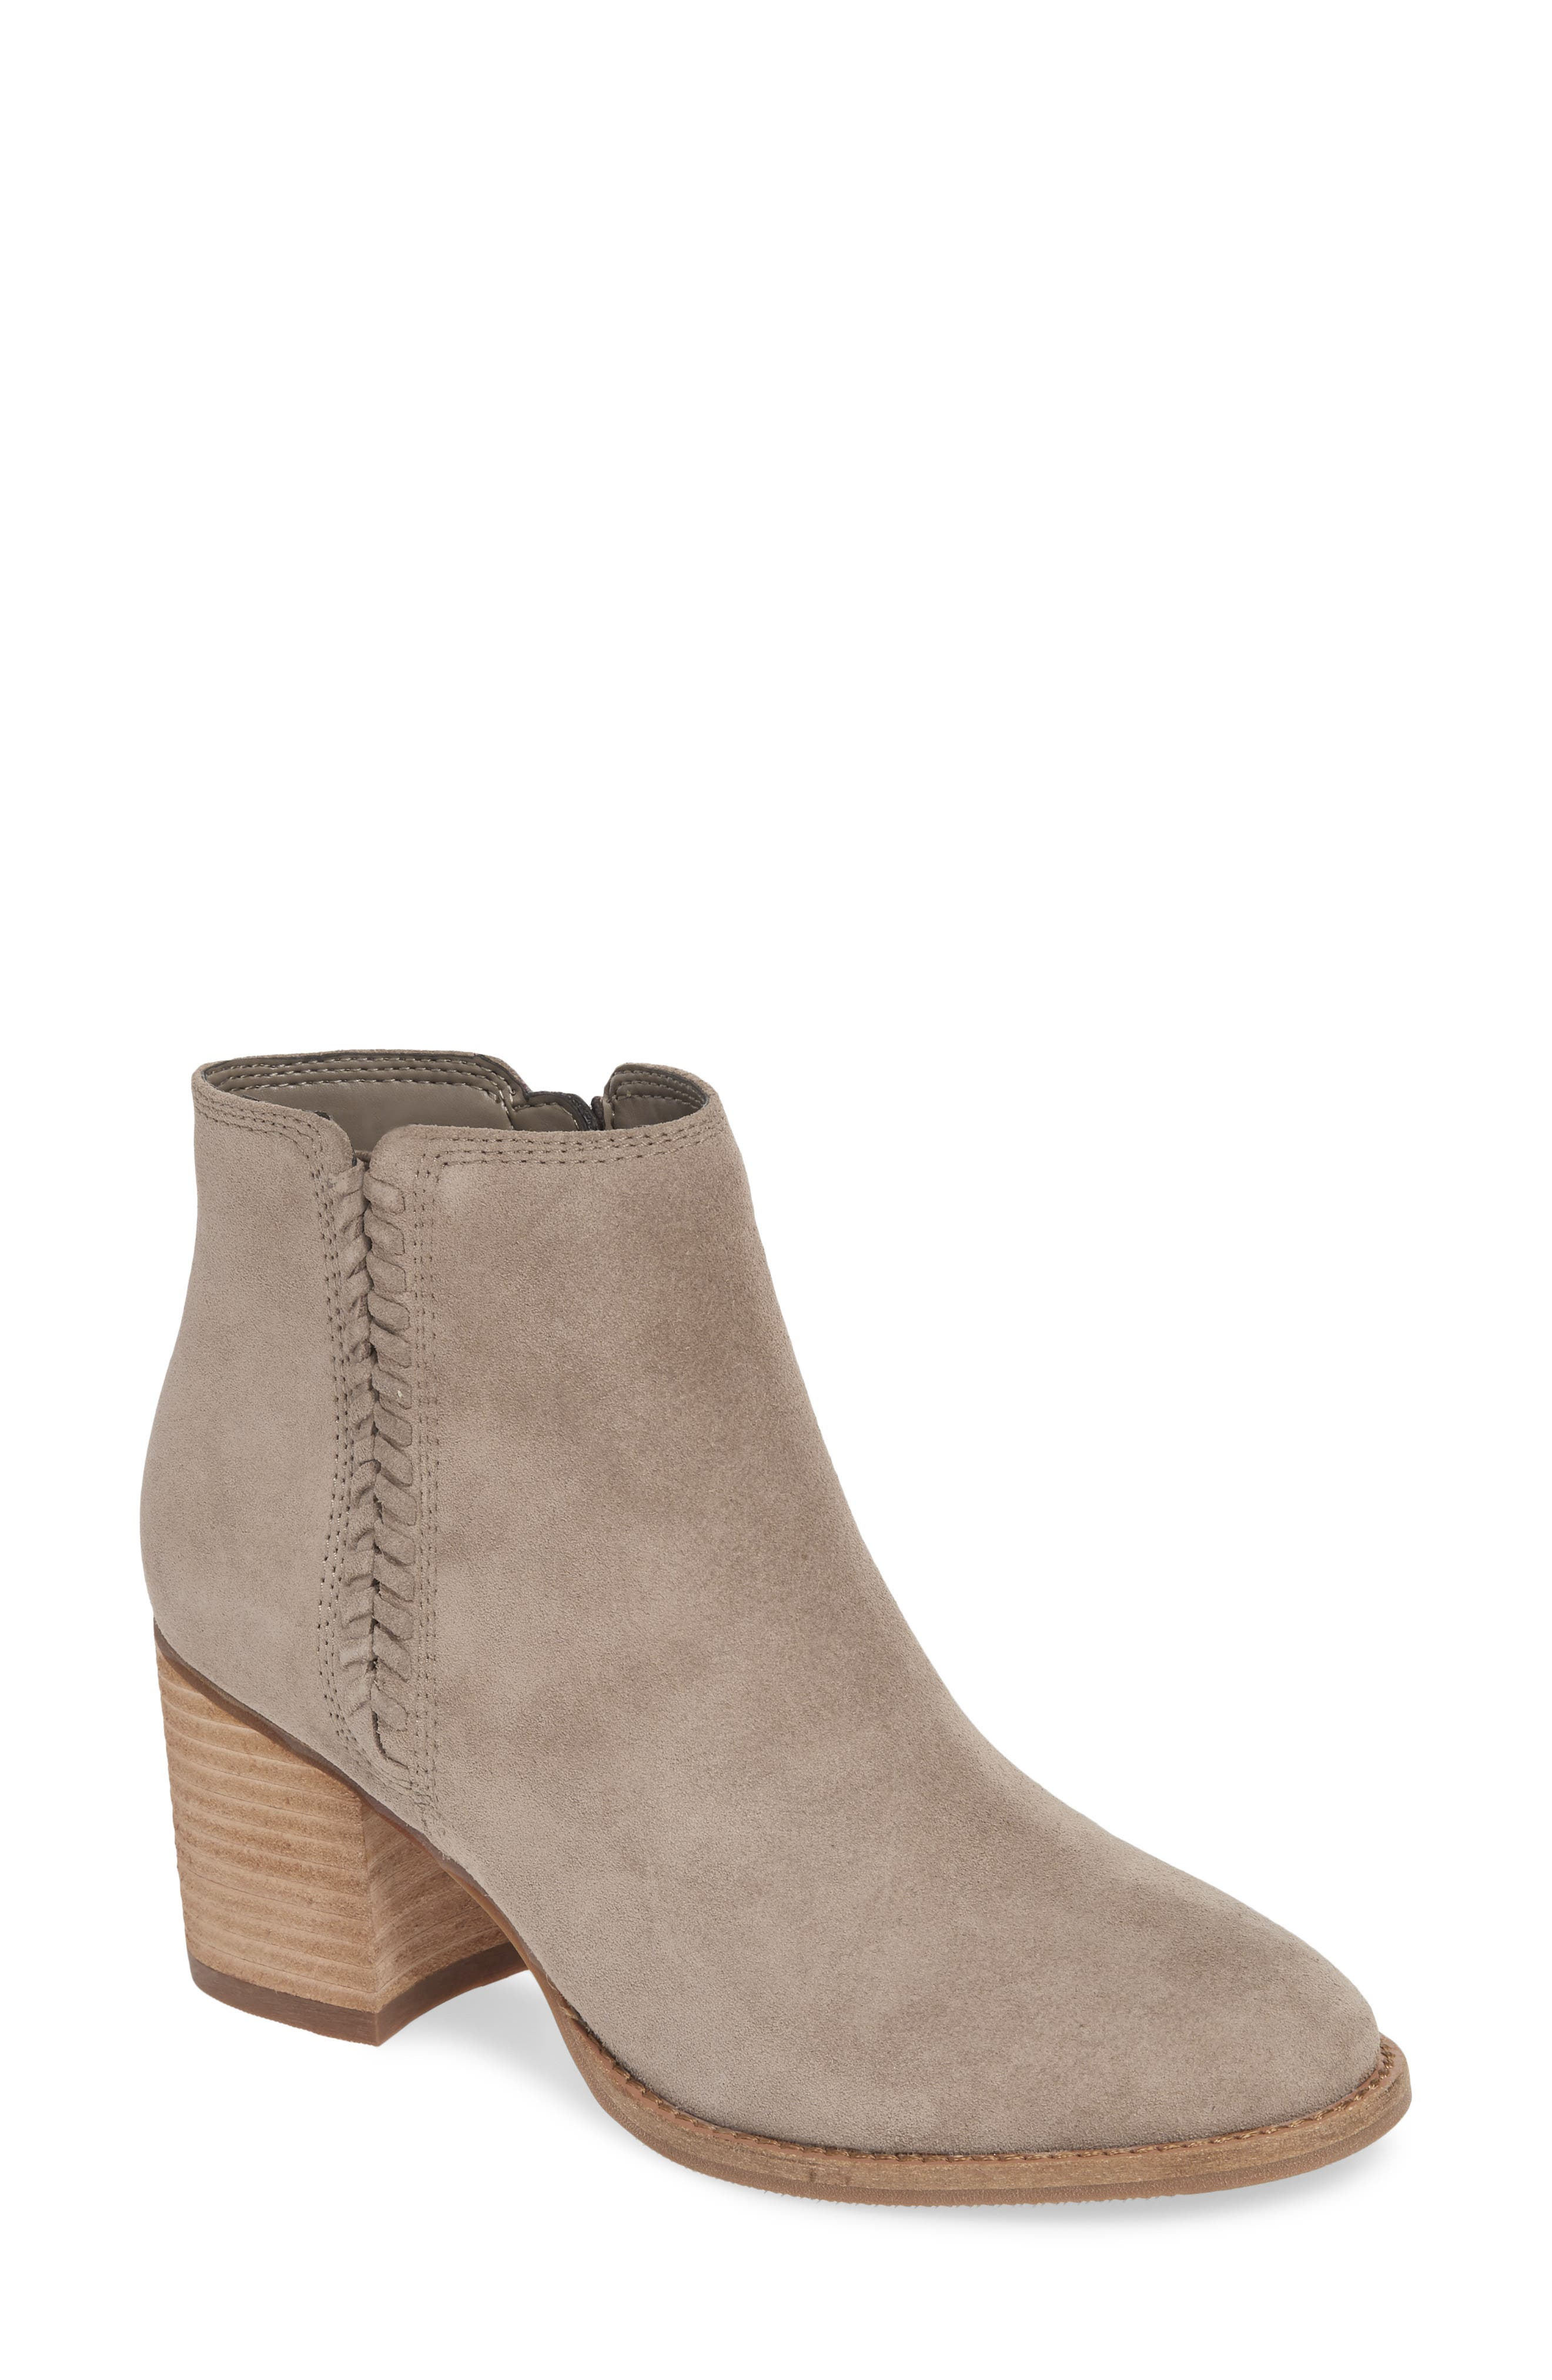 Blondo Nina Waterproof Suede Boot (Women)